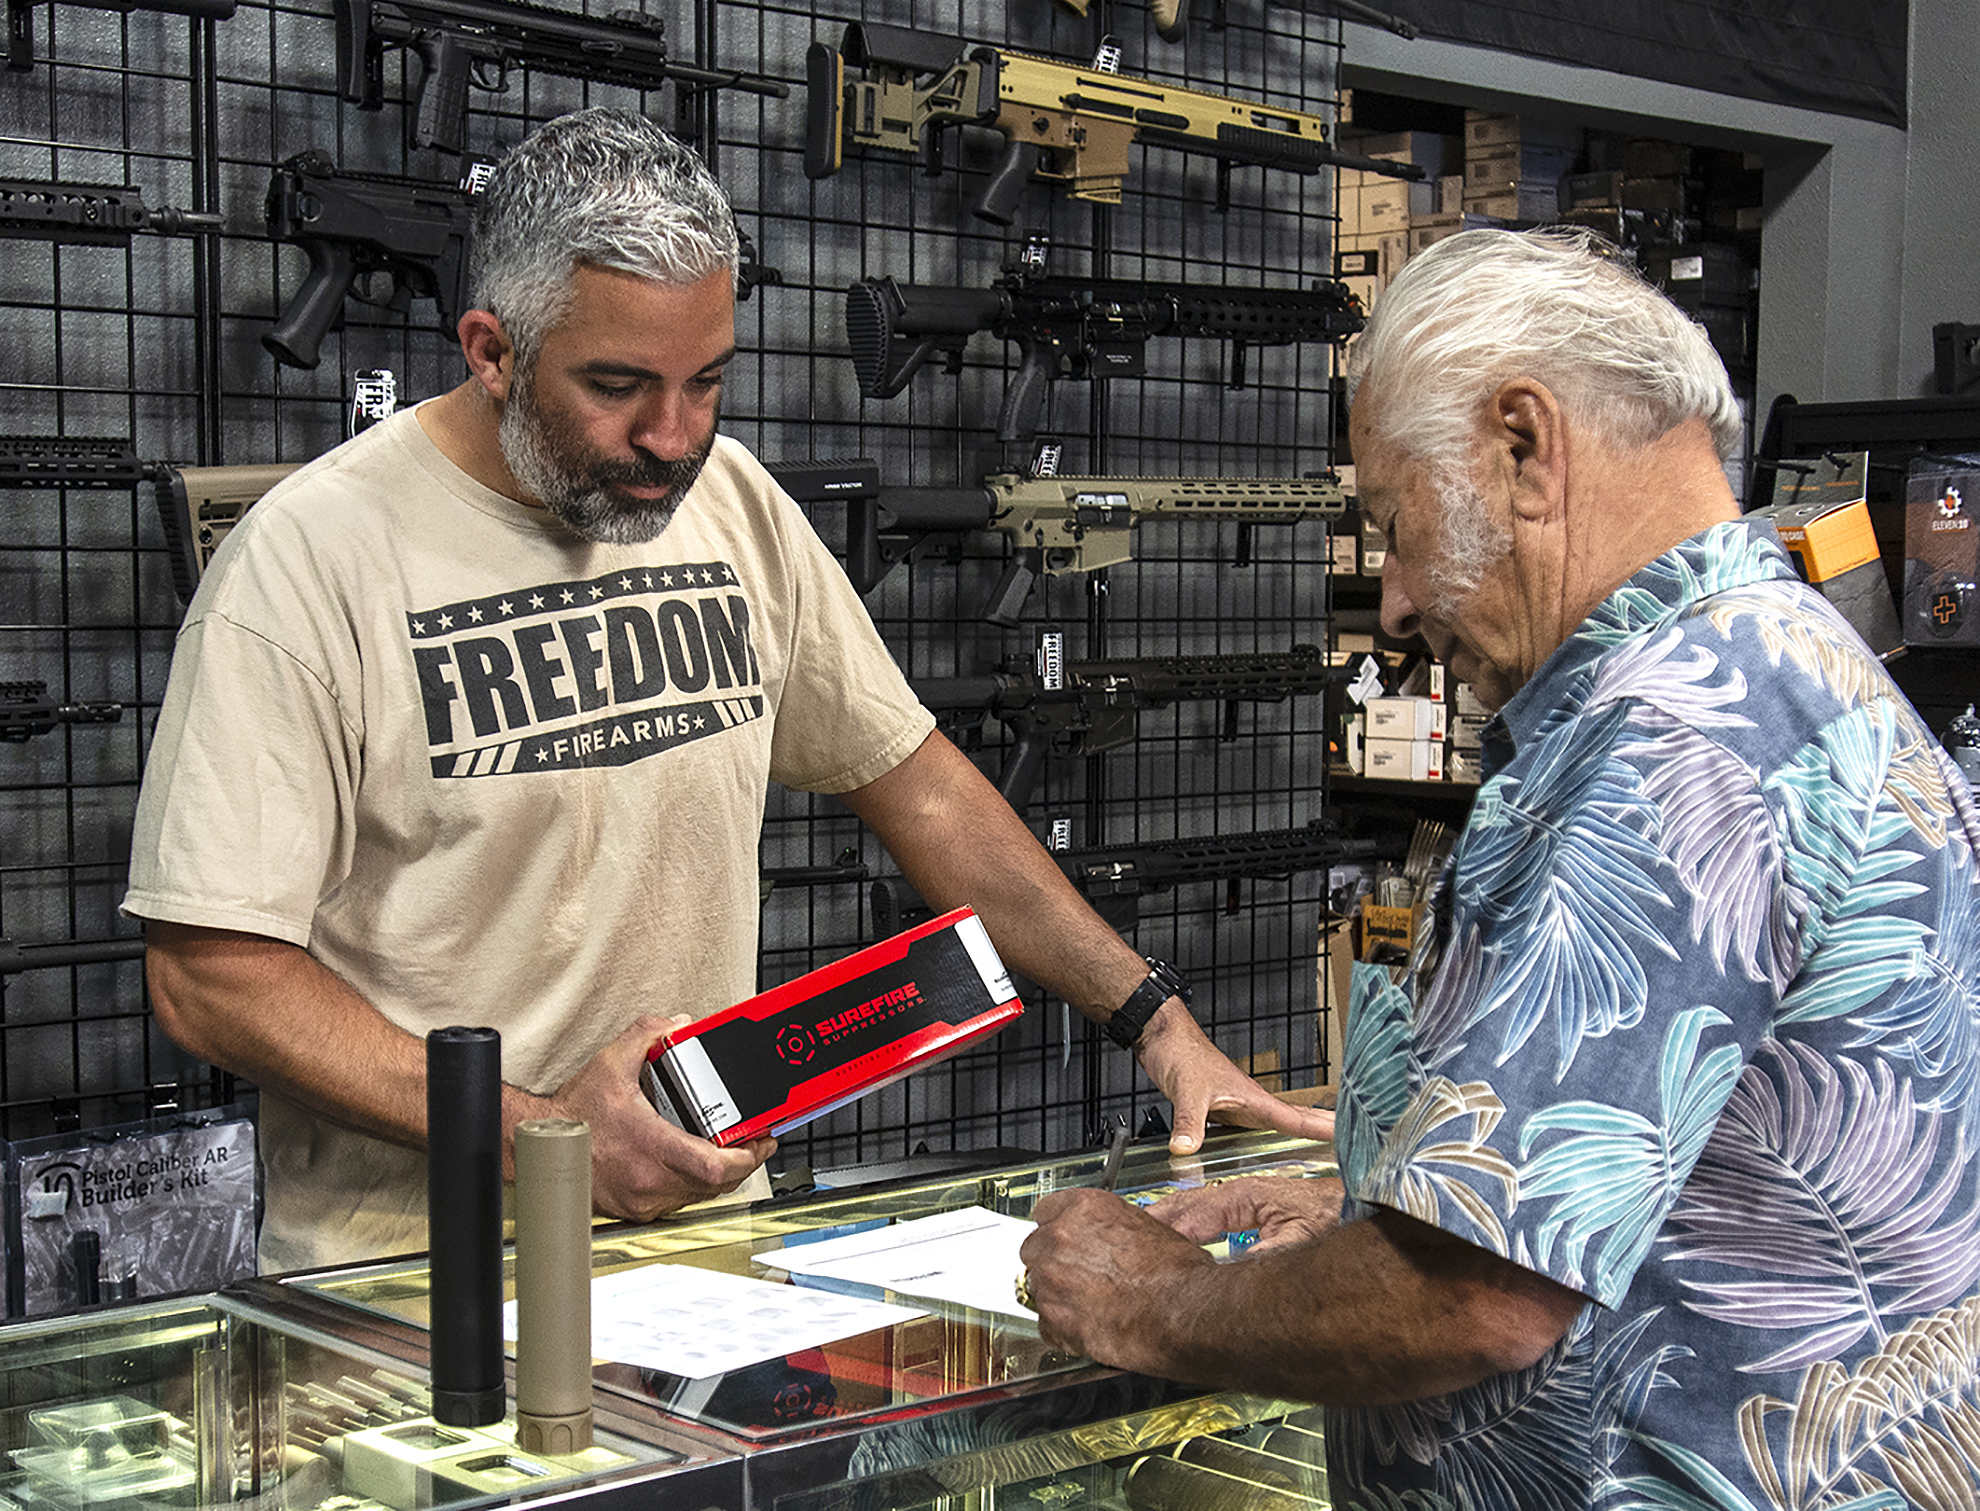 Freedom Firearms helps customer buy suppressor